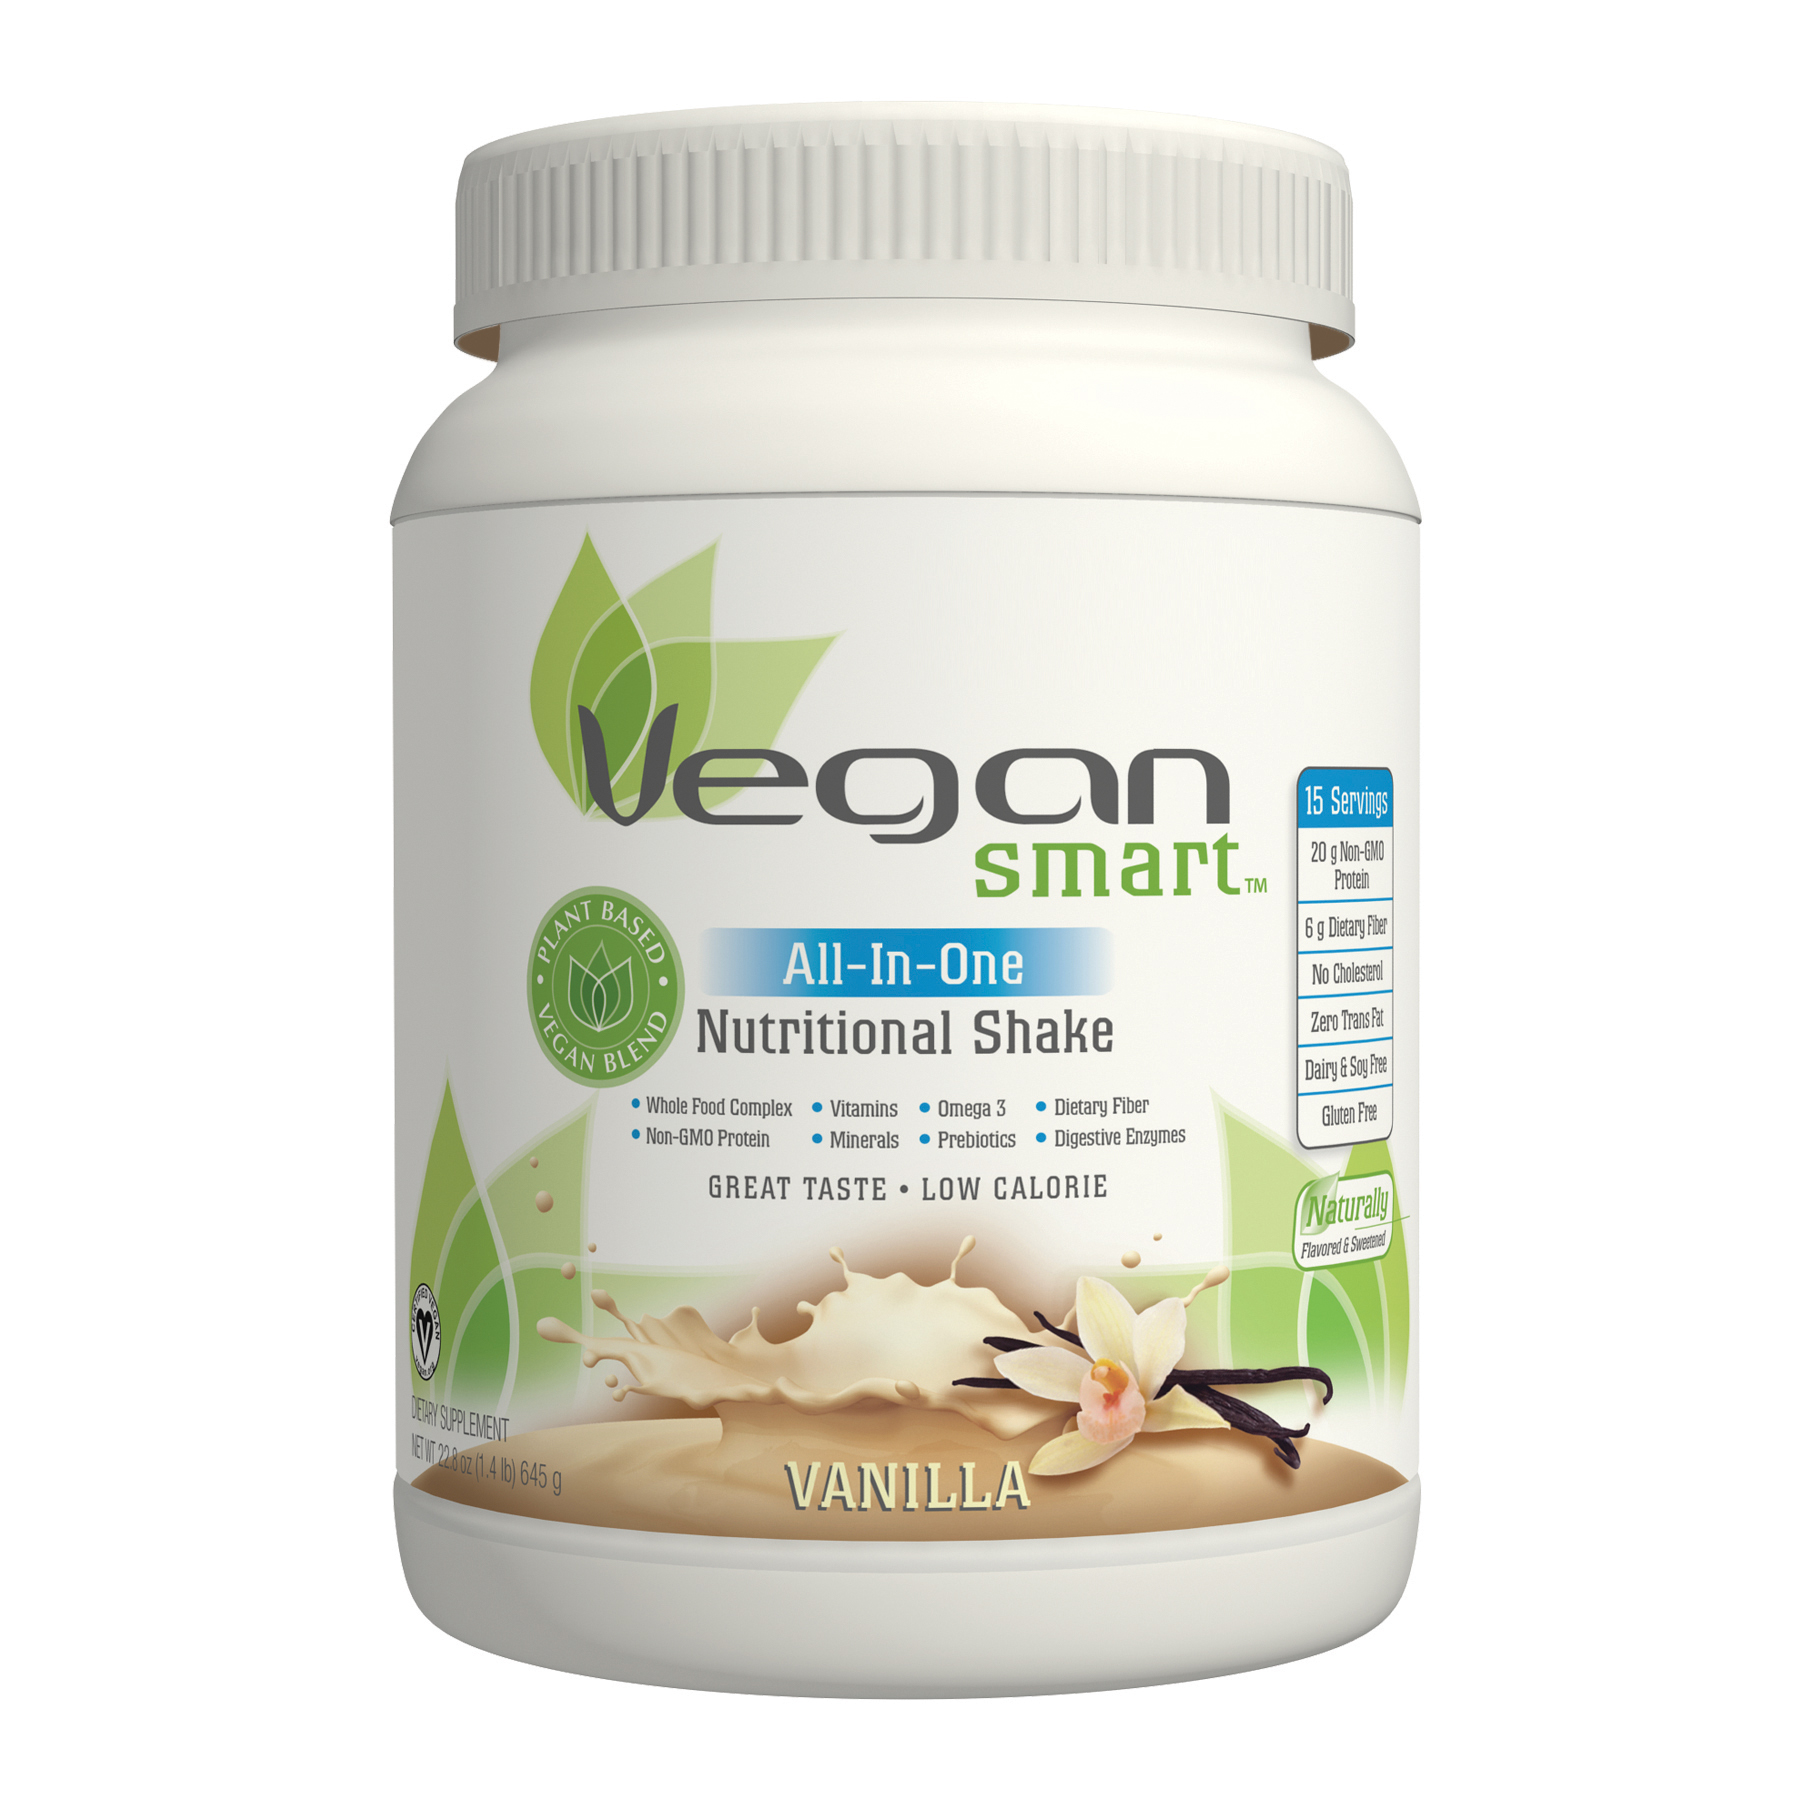 Vegan Smart Vanilla Protein Powder